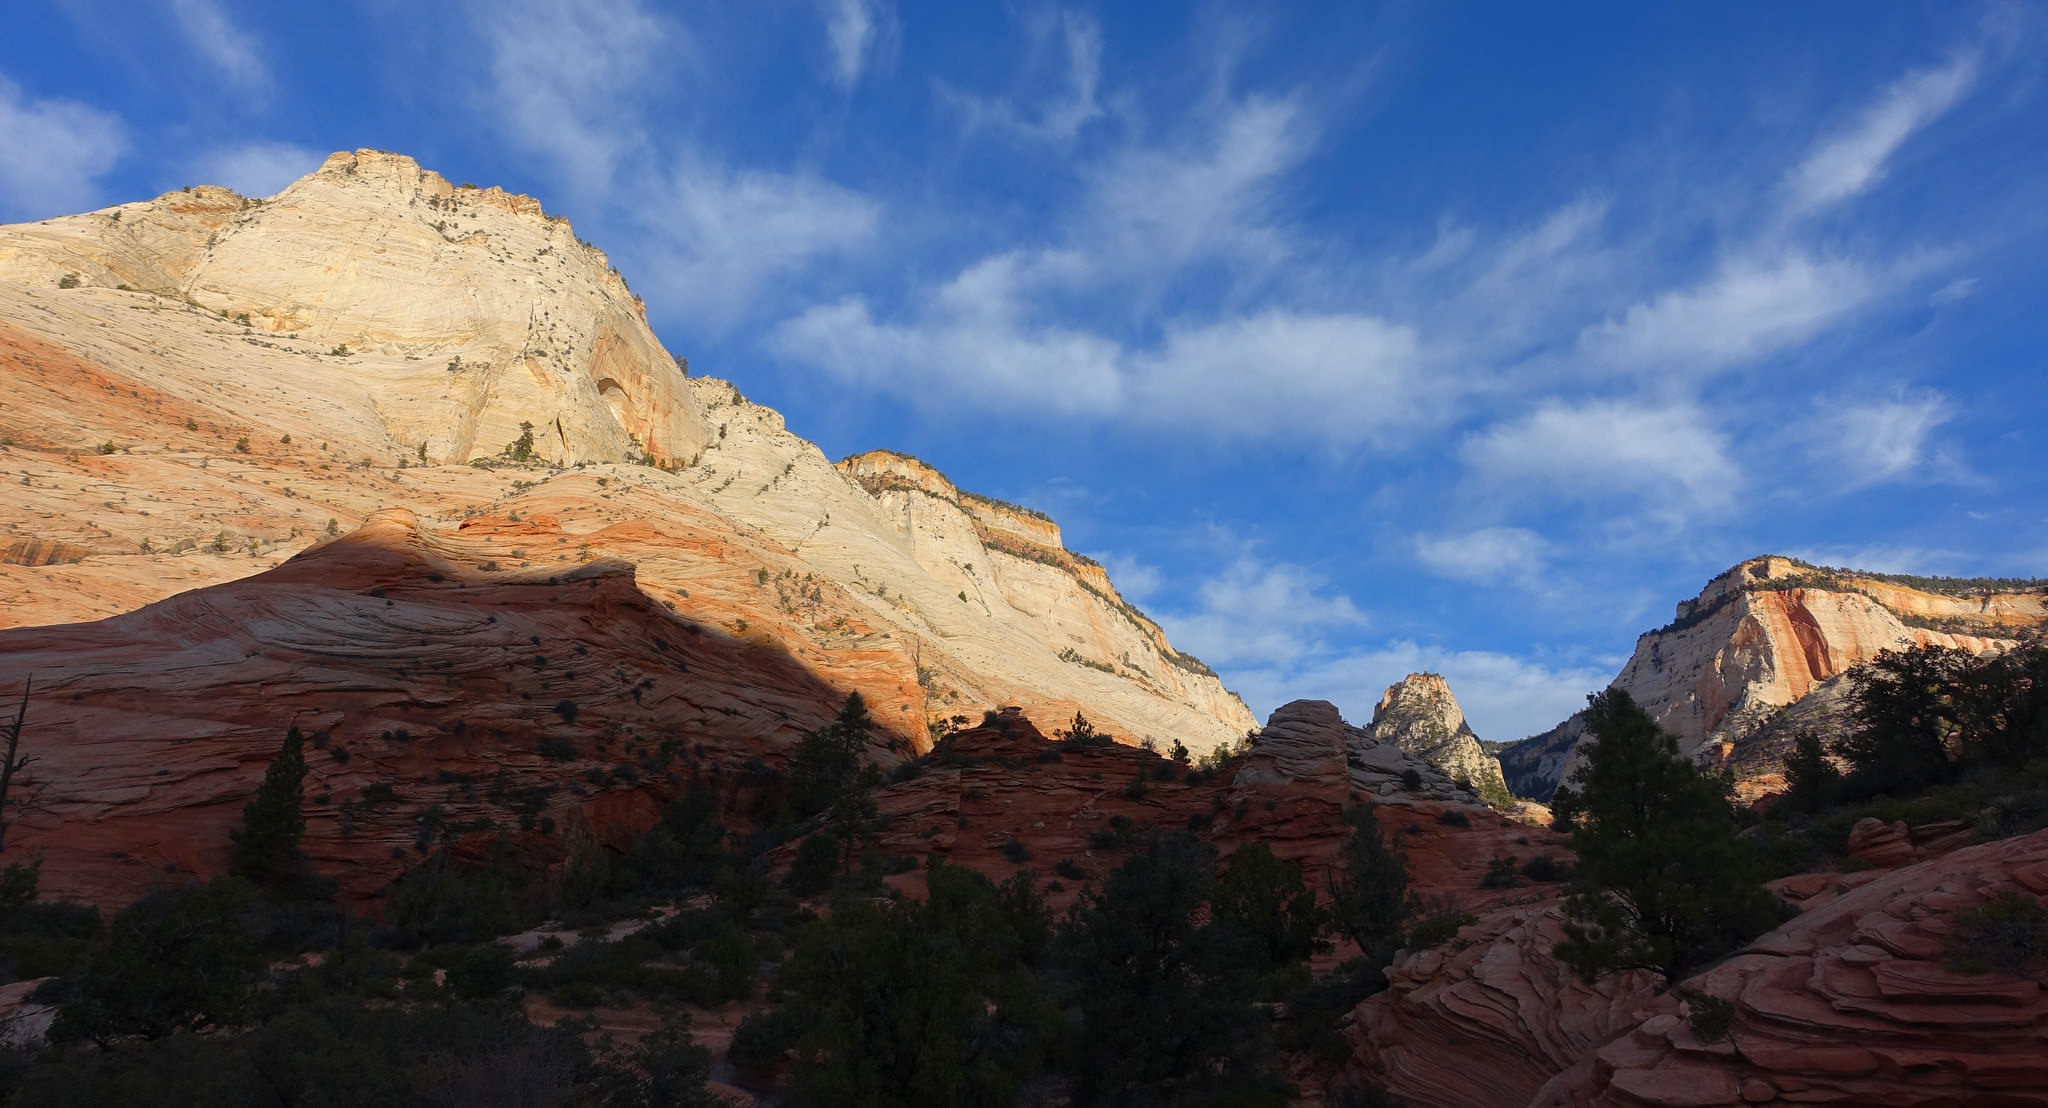 Mountains and canyons along Zion-Mount Carmel Highway